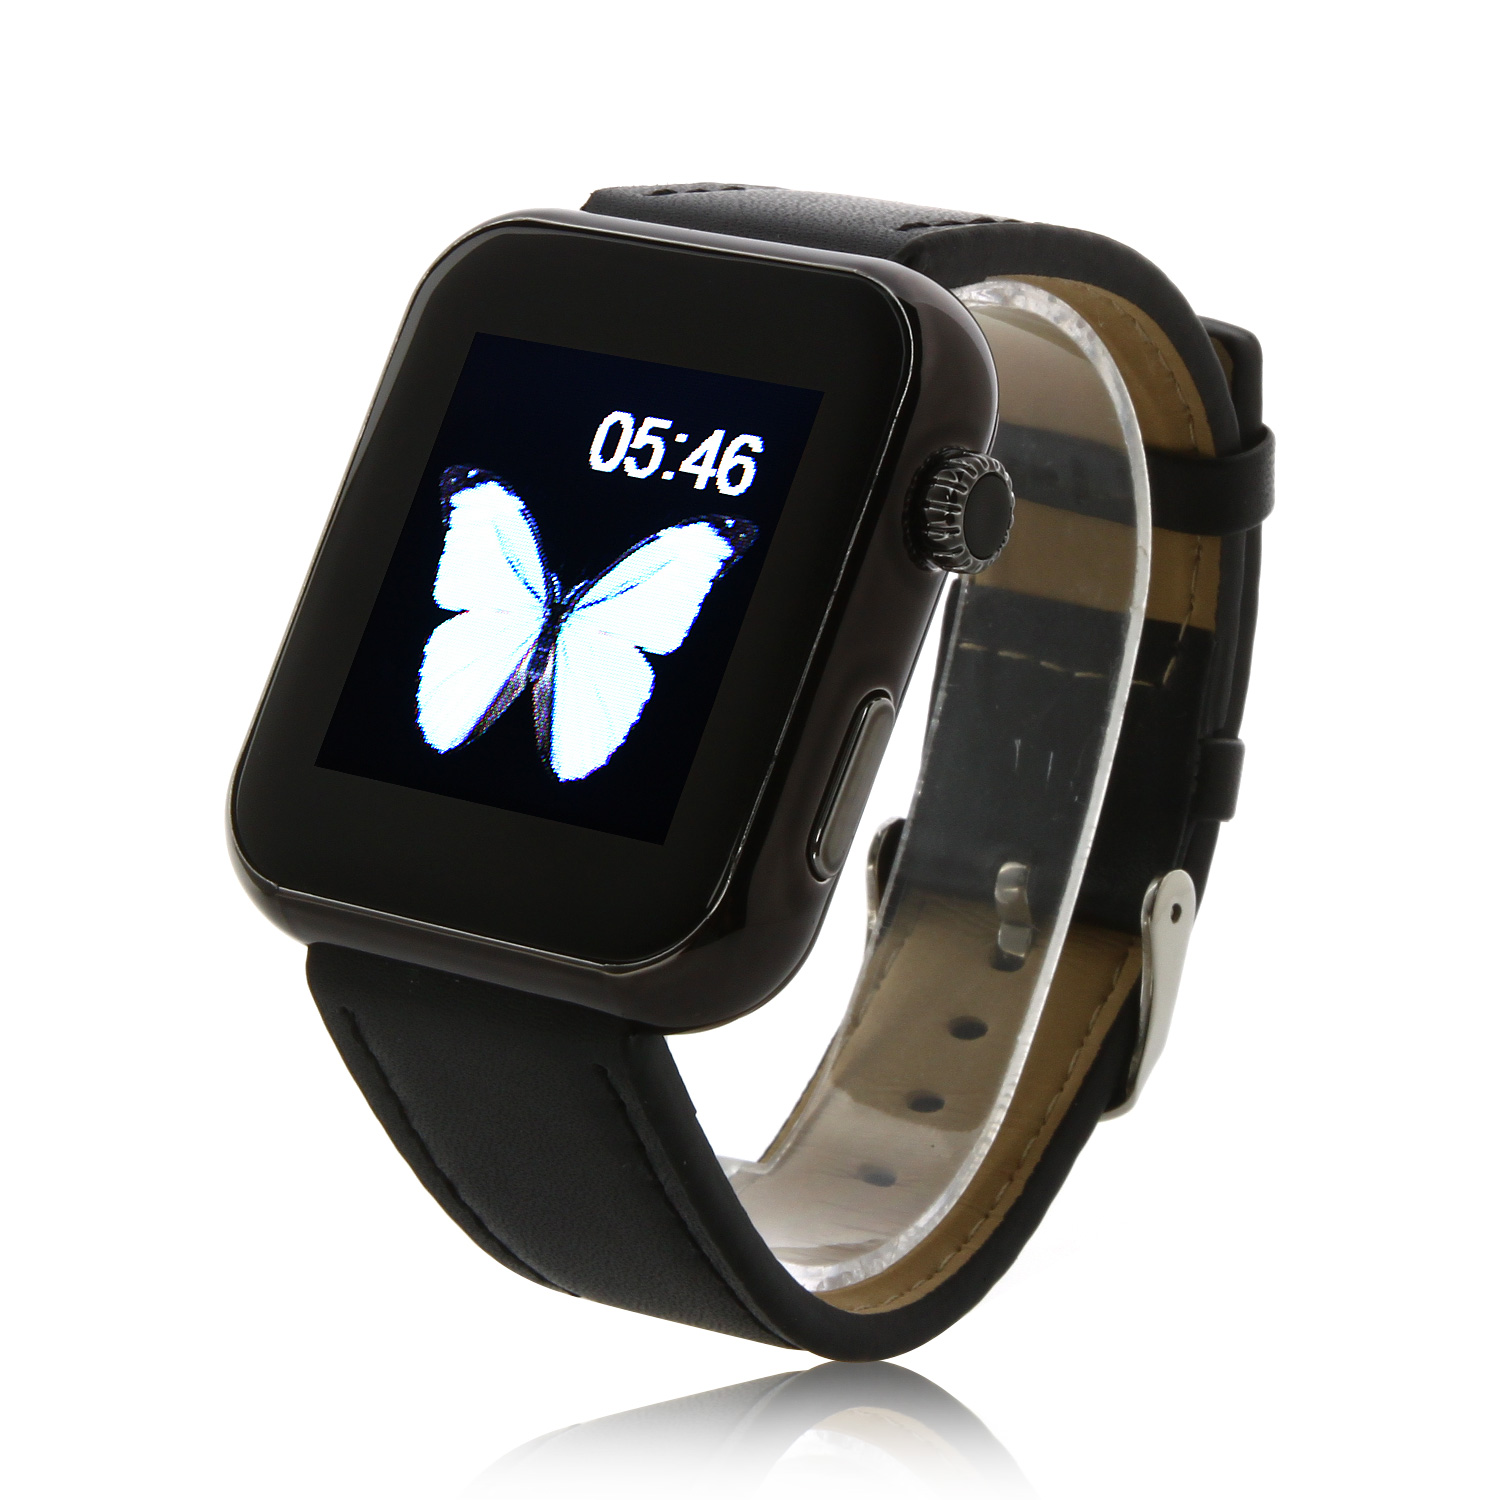 Atongm AW08 Bluetooth Watch Smart Watch with Call MMS Pedometer Anti-lost Black